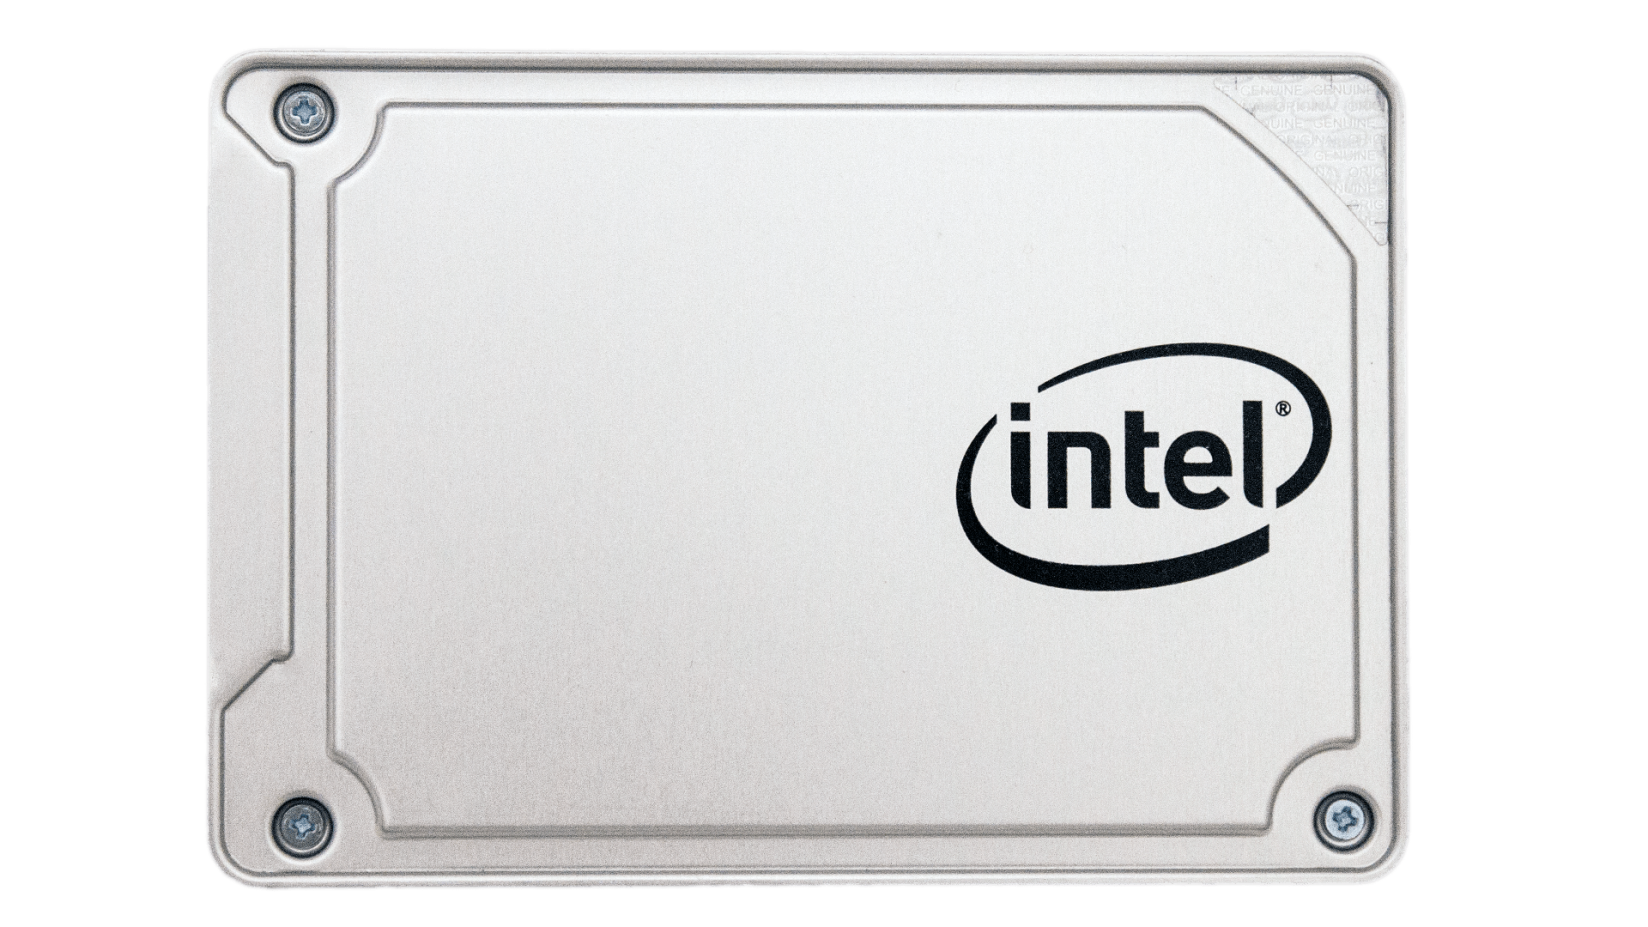 "DISCO DURO SOLIDO SSD INTEL 128GB 2.5"" SATA3 545 SERI"